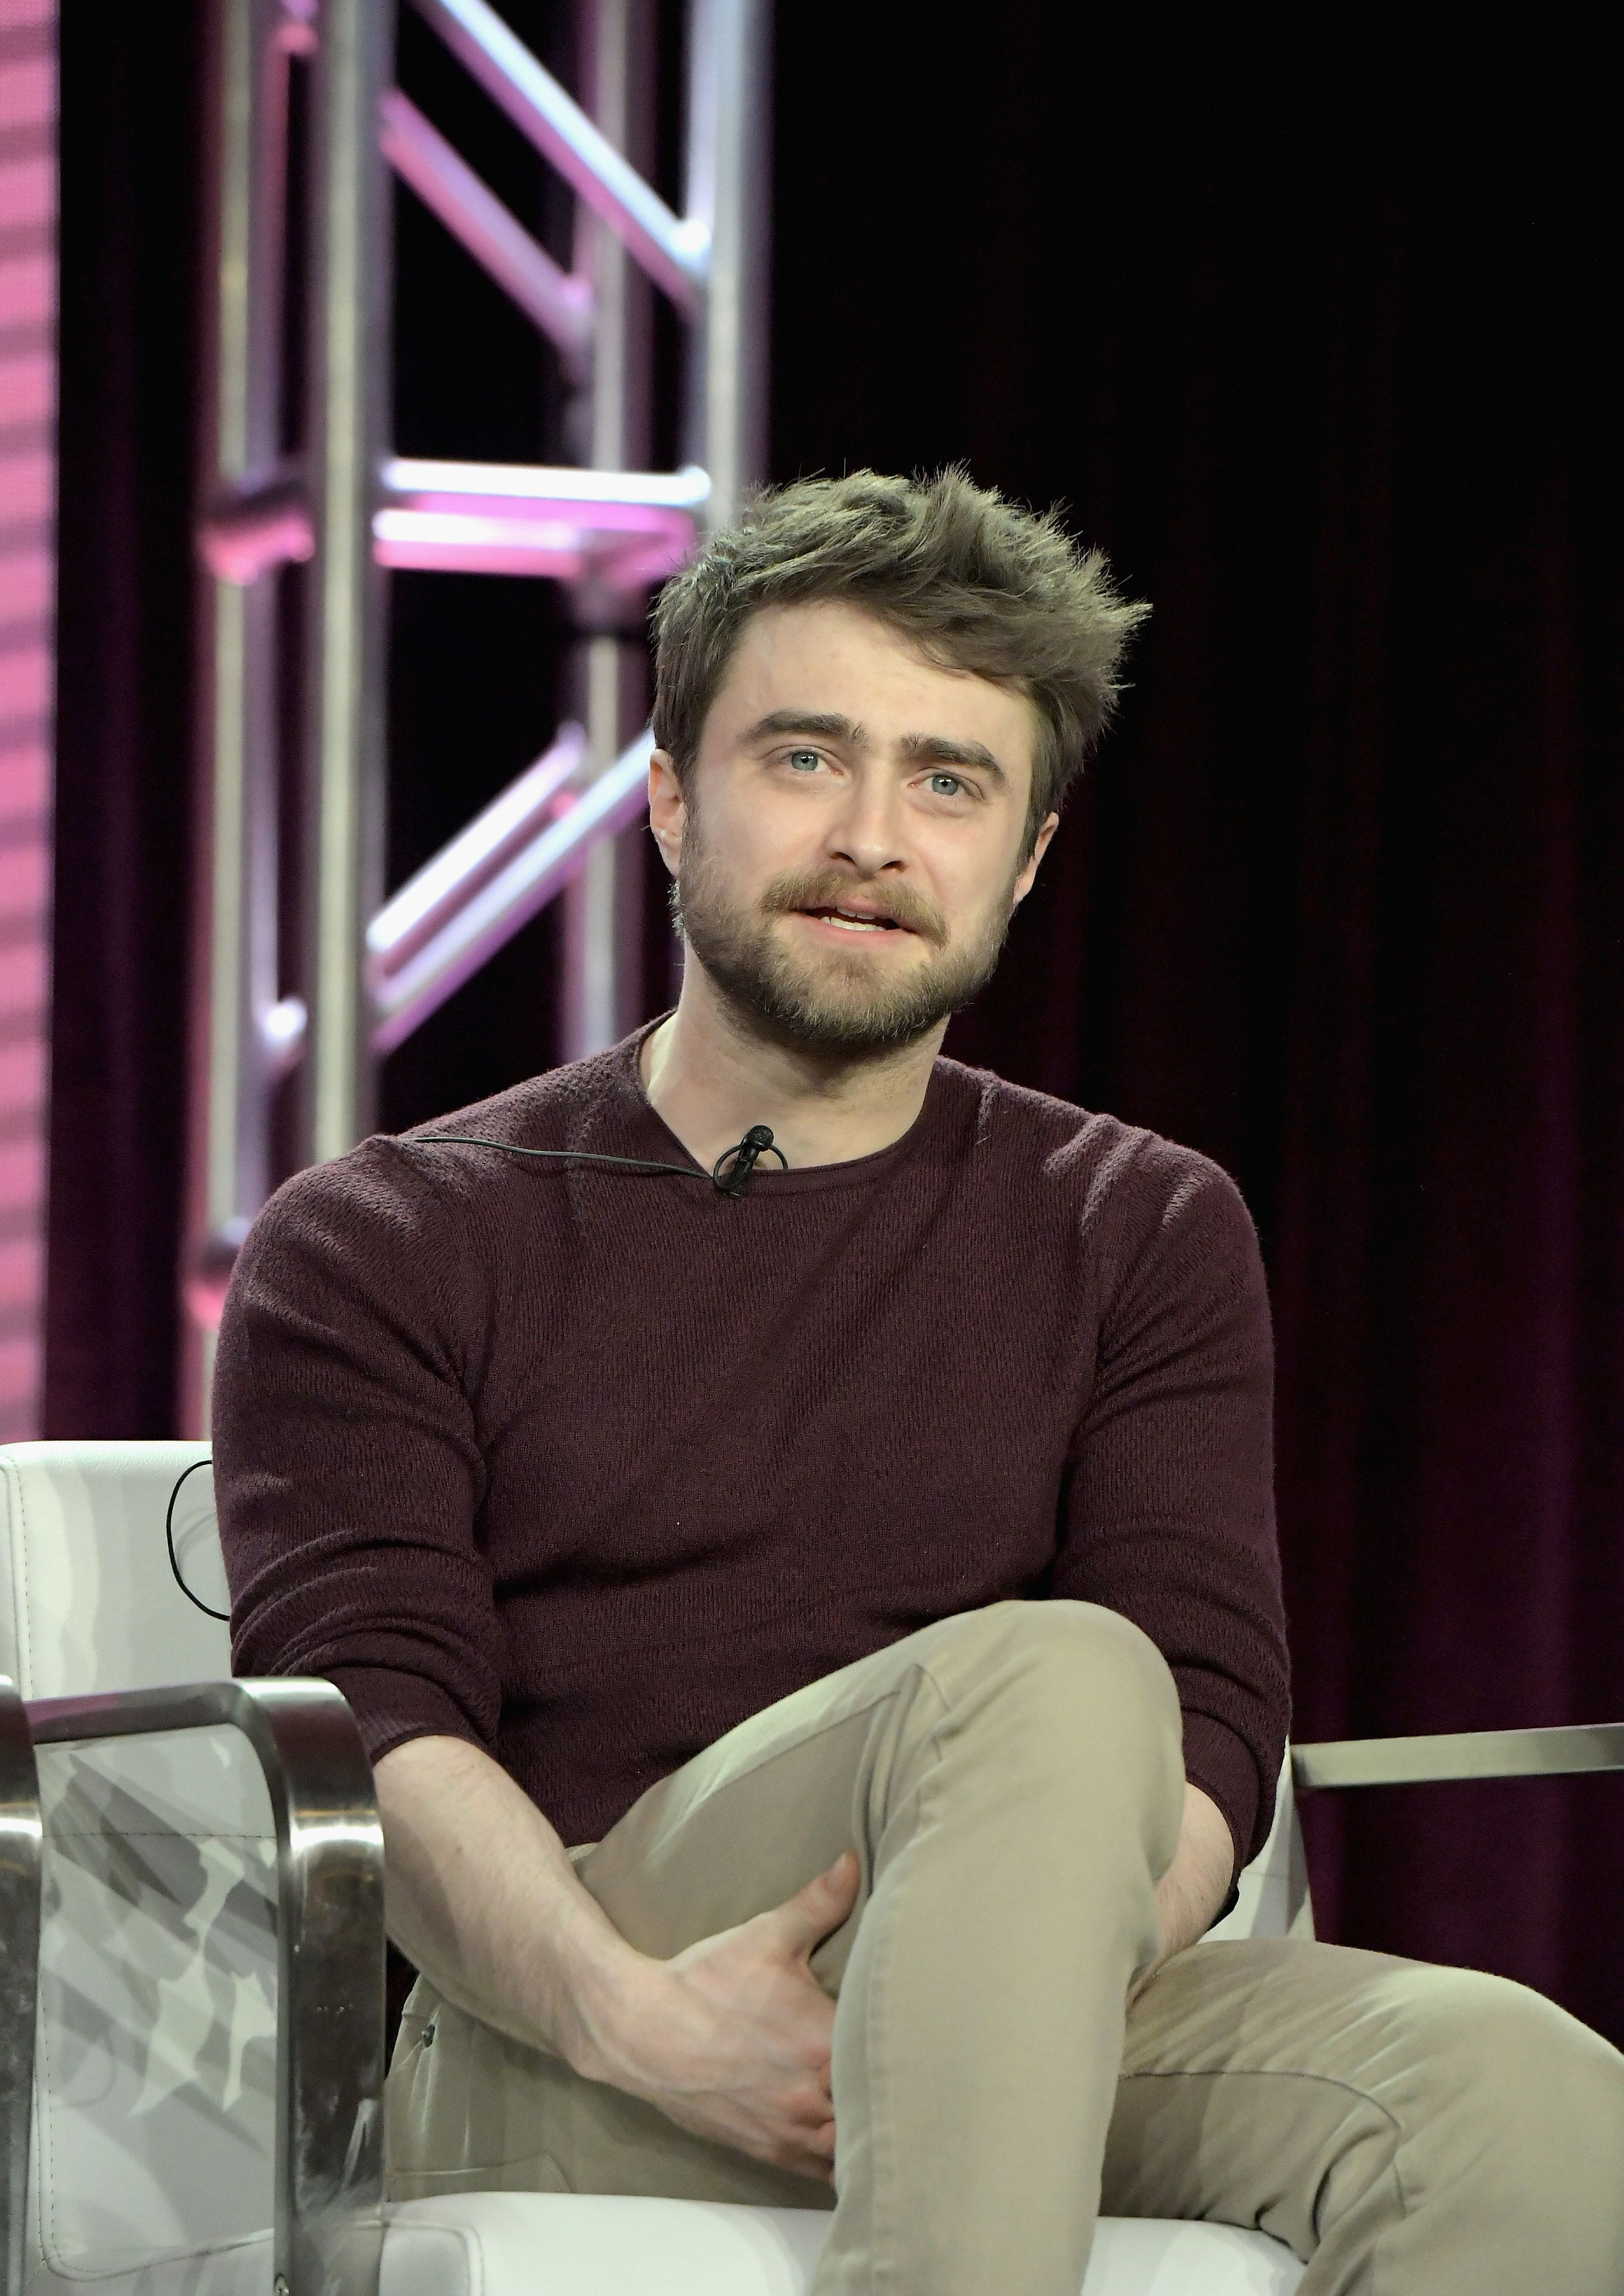 PASADENA, CA - FEBRUARY 11:  Daniel Radcliffe of 'Miracle Workers' speaks onstage during the TBS portion of the TCA Turner Winter Press Tour 2019 Presentation at The Langham Huntington Hotel and Spa on February 11, 2019 in Pasadena, California. 510169  (Photo by Charley Gallay/Getty Images for Turner)